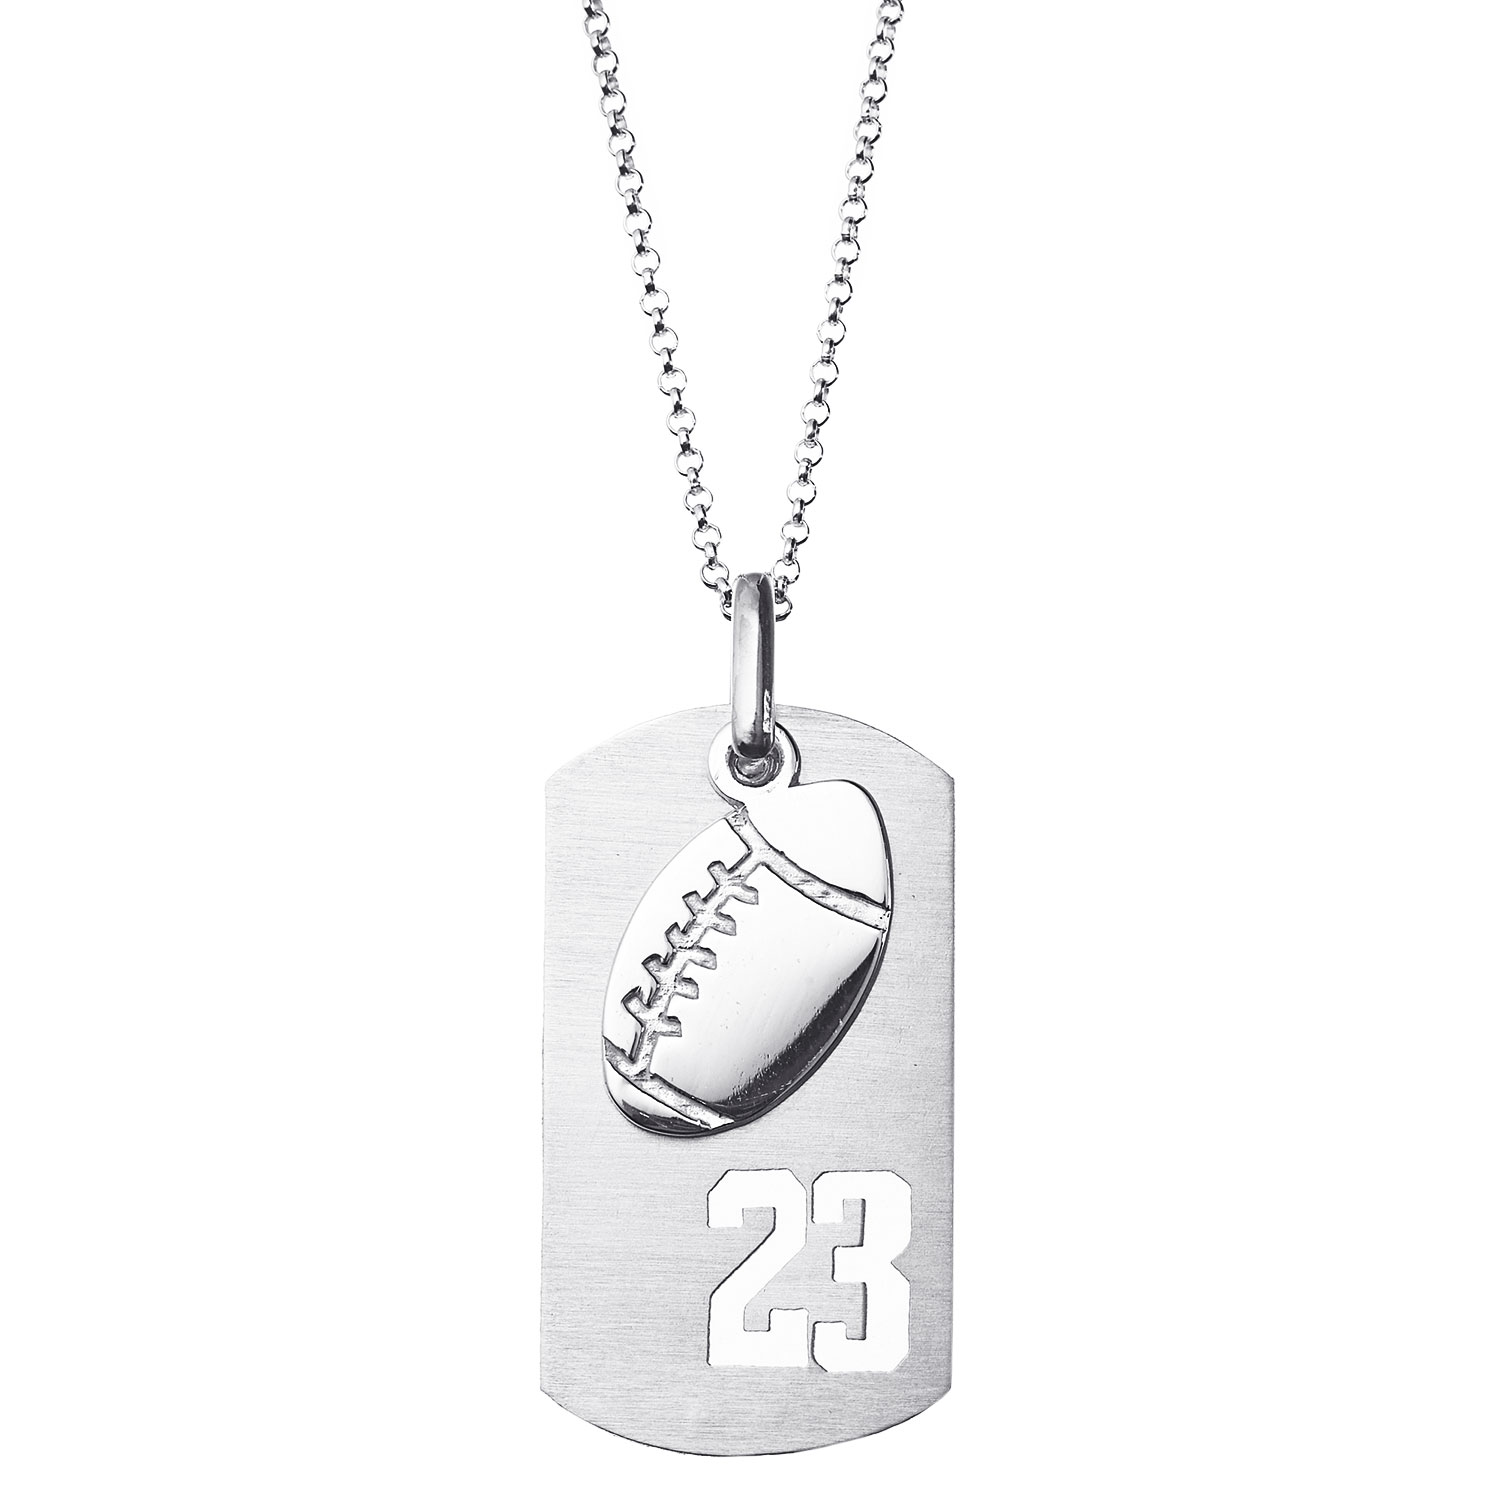 Zales 20.0mm NHL Team Logo Pendant in Sterling Silver (Select Team) - 20 tBhy2YkZs6